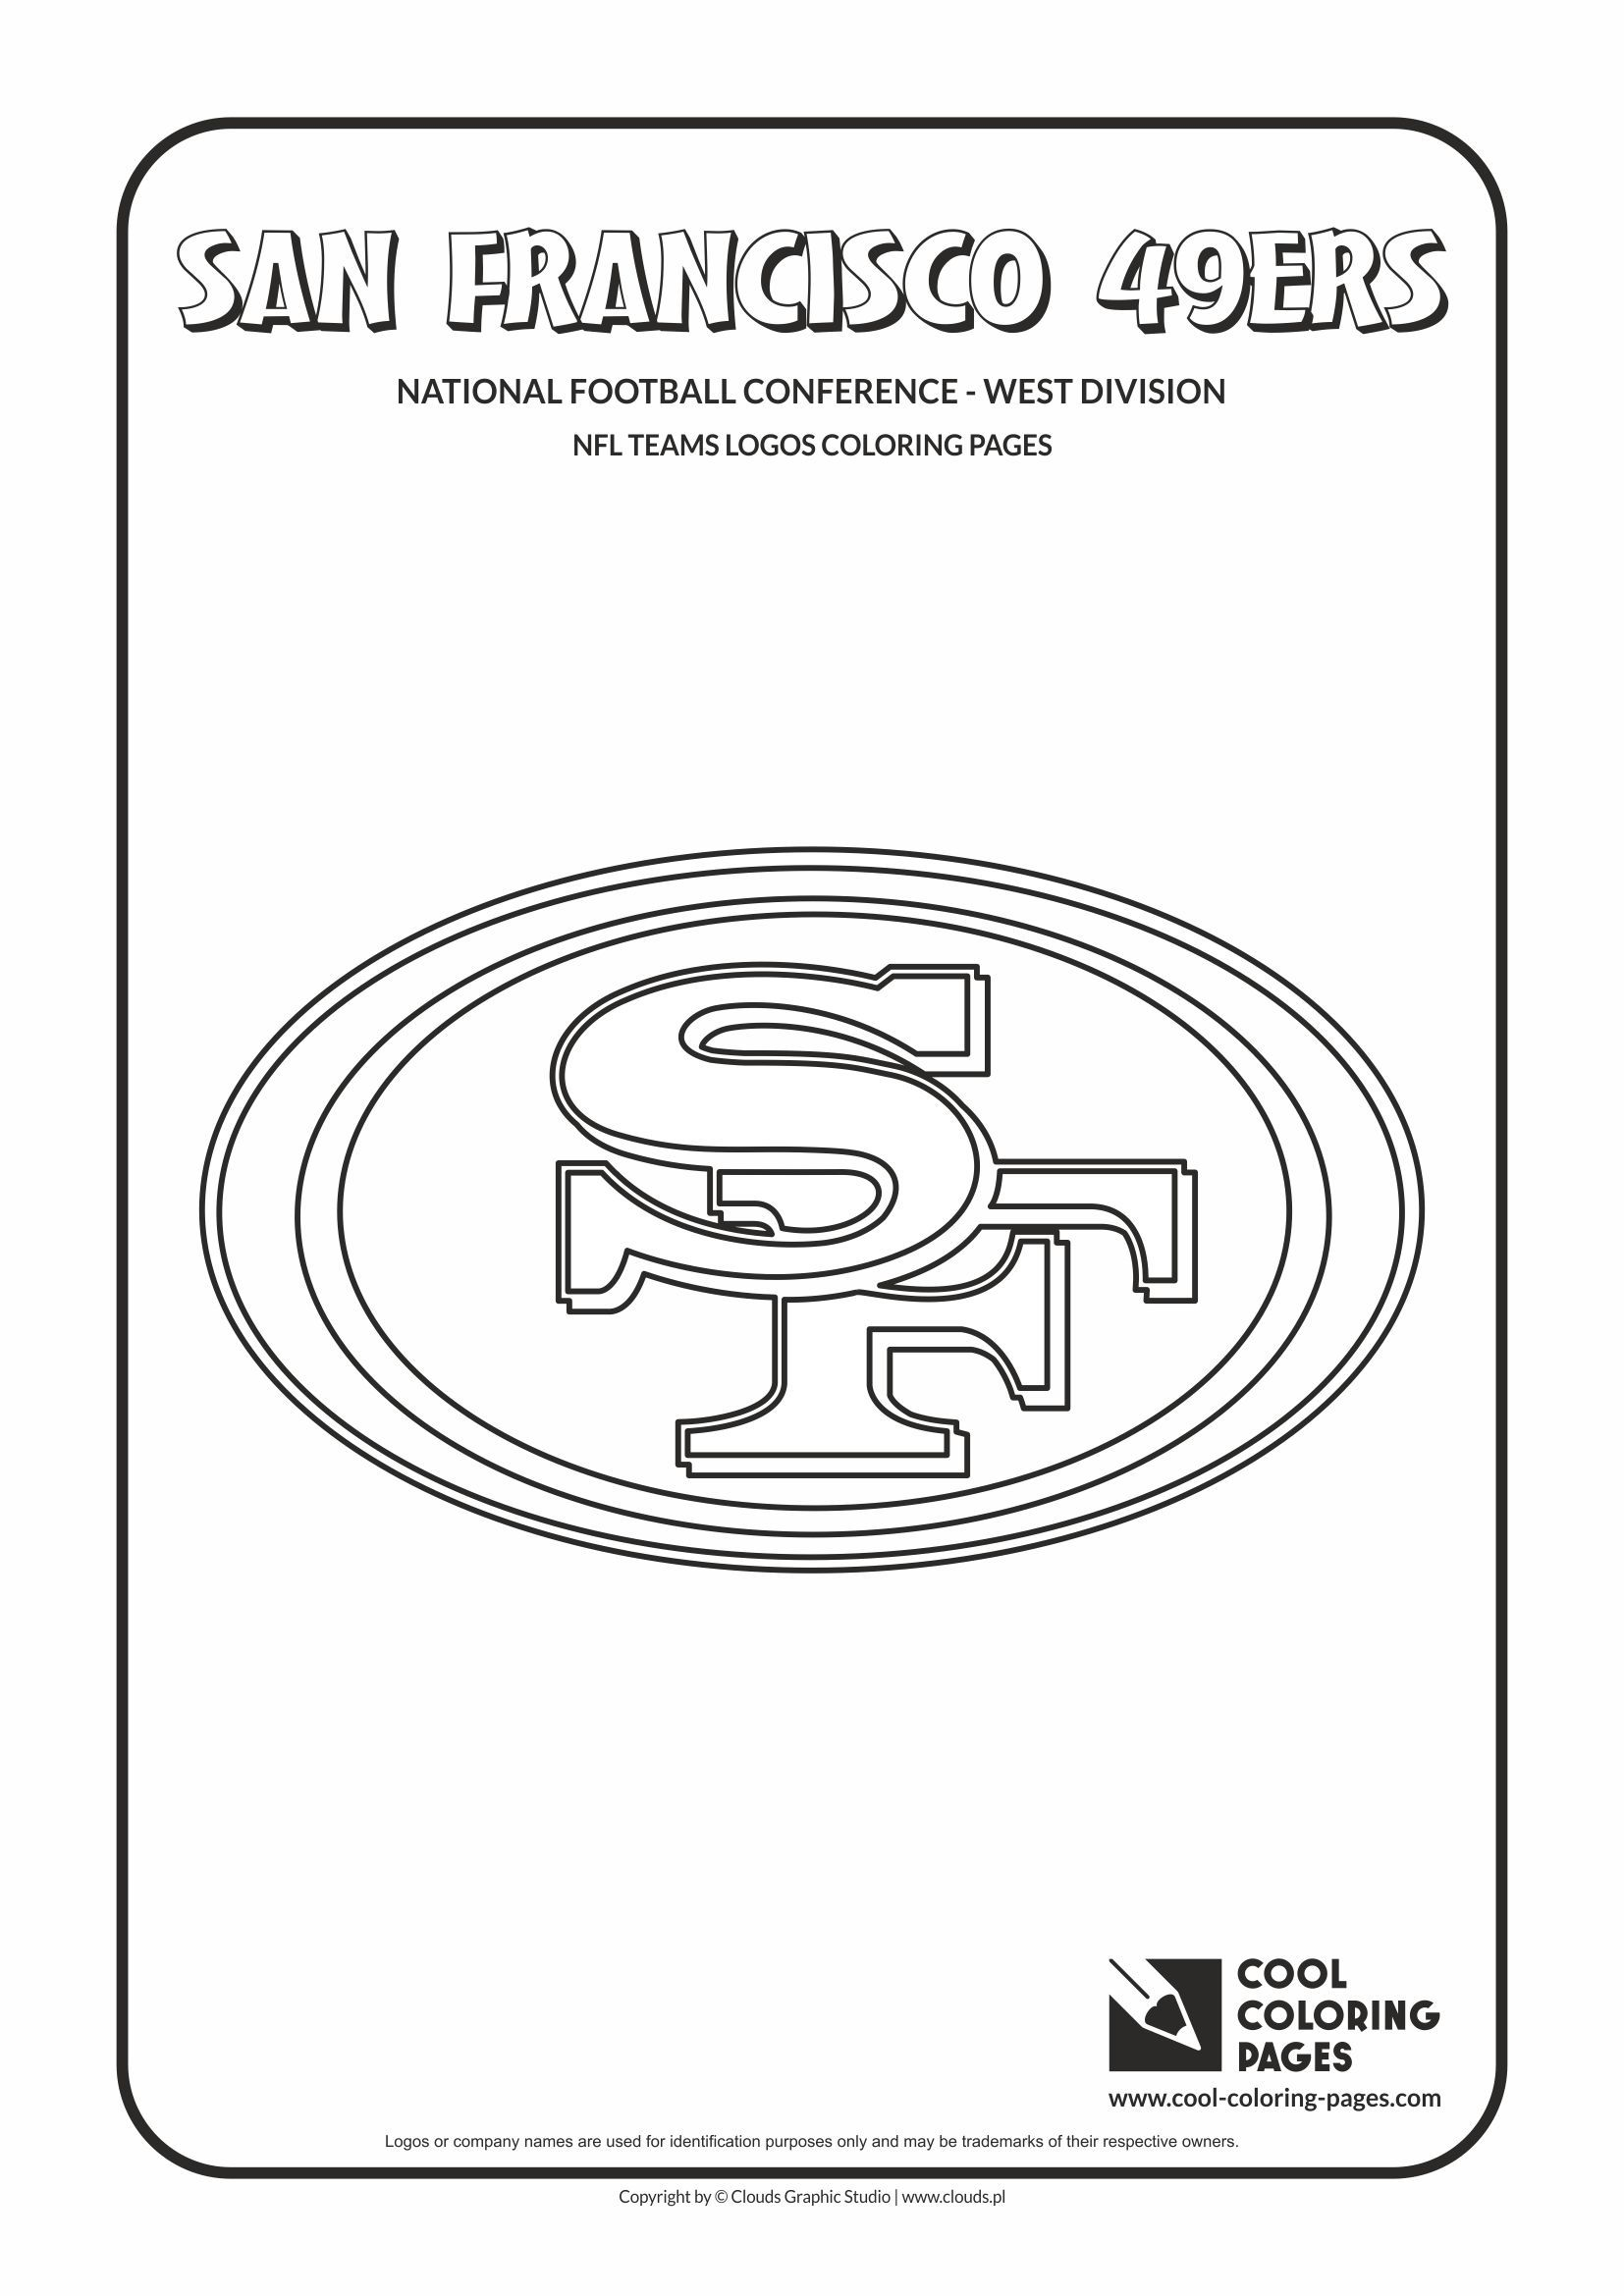 Cool Coloring Pages - NFL American Football Clubs Logos - National ...